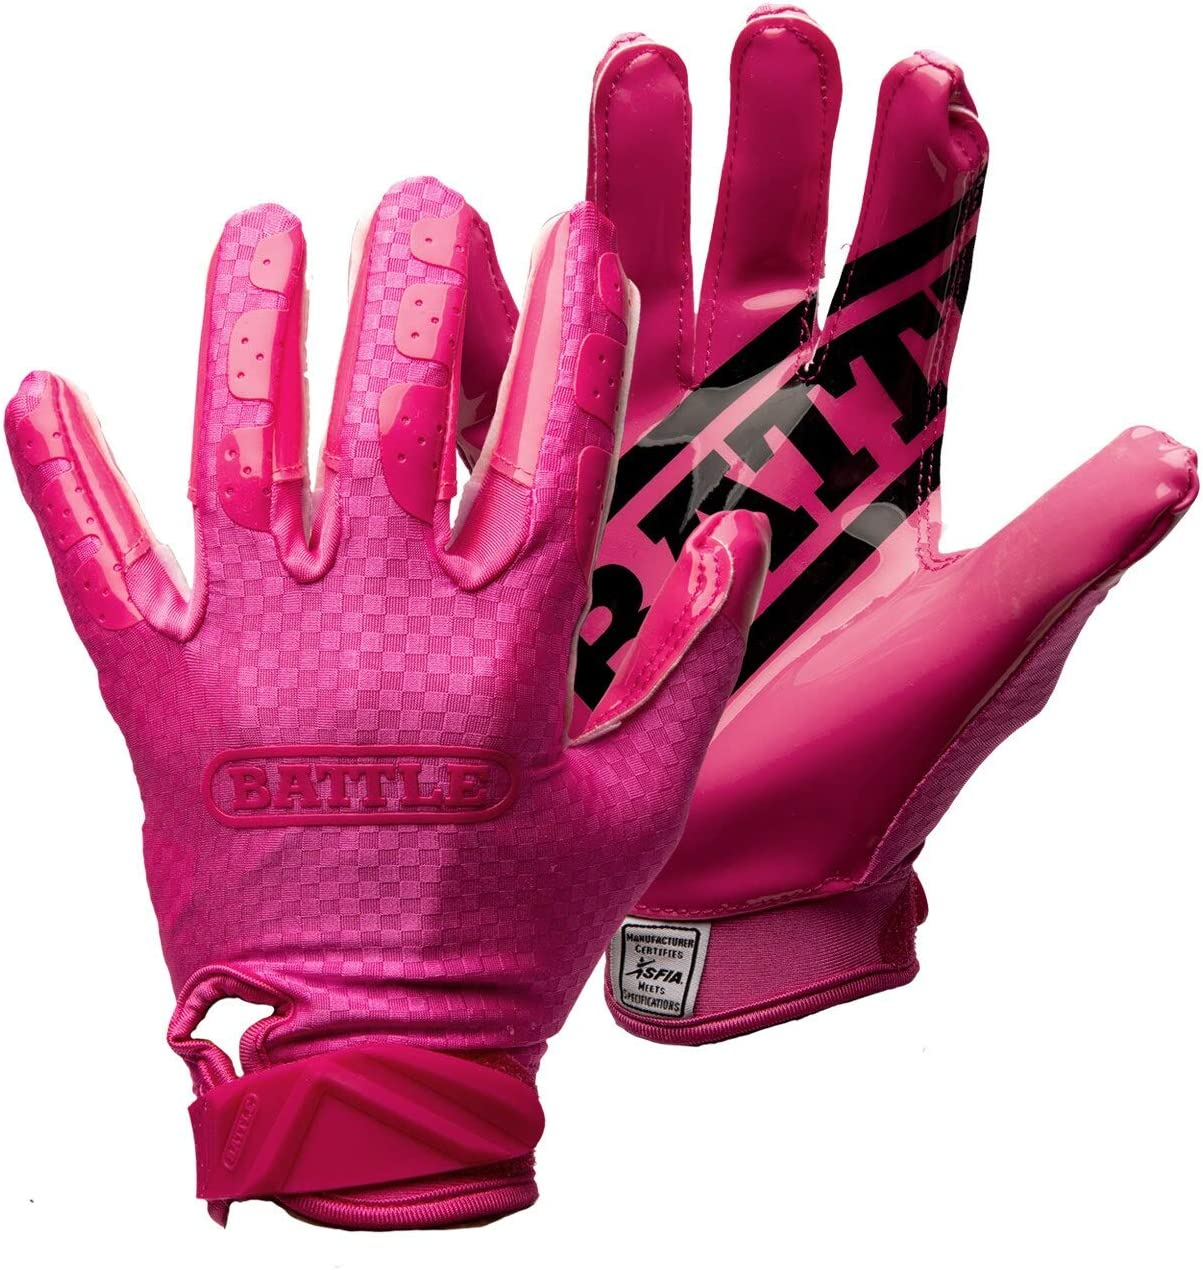 Battle Triple Threat Adult Receiver Gloves : Sports & Outdoors